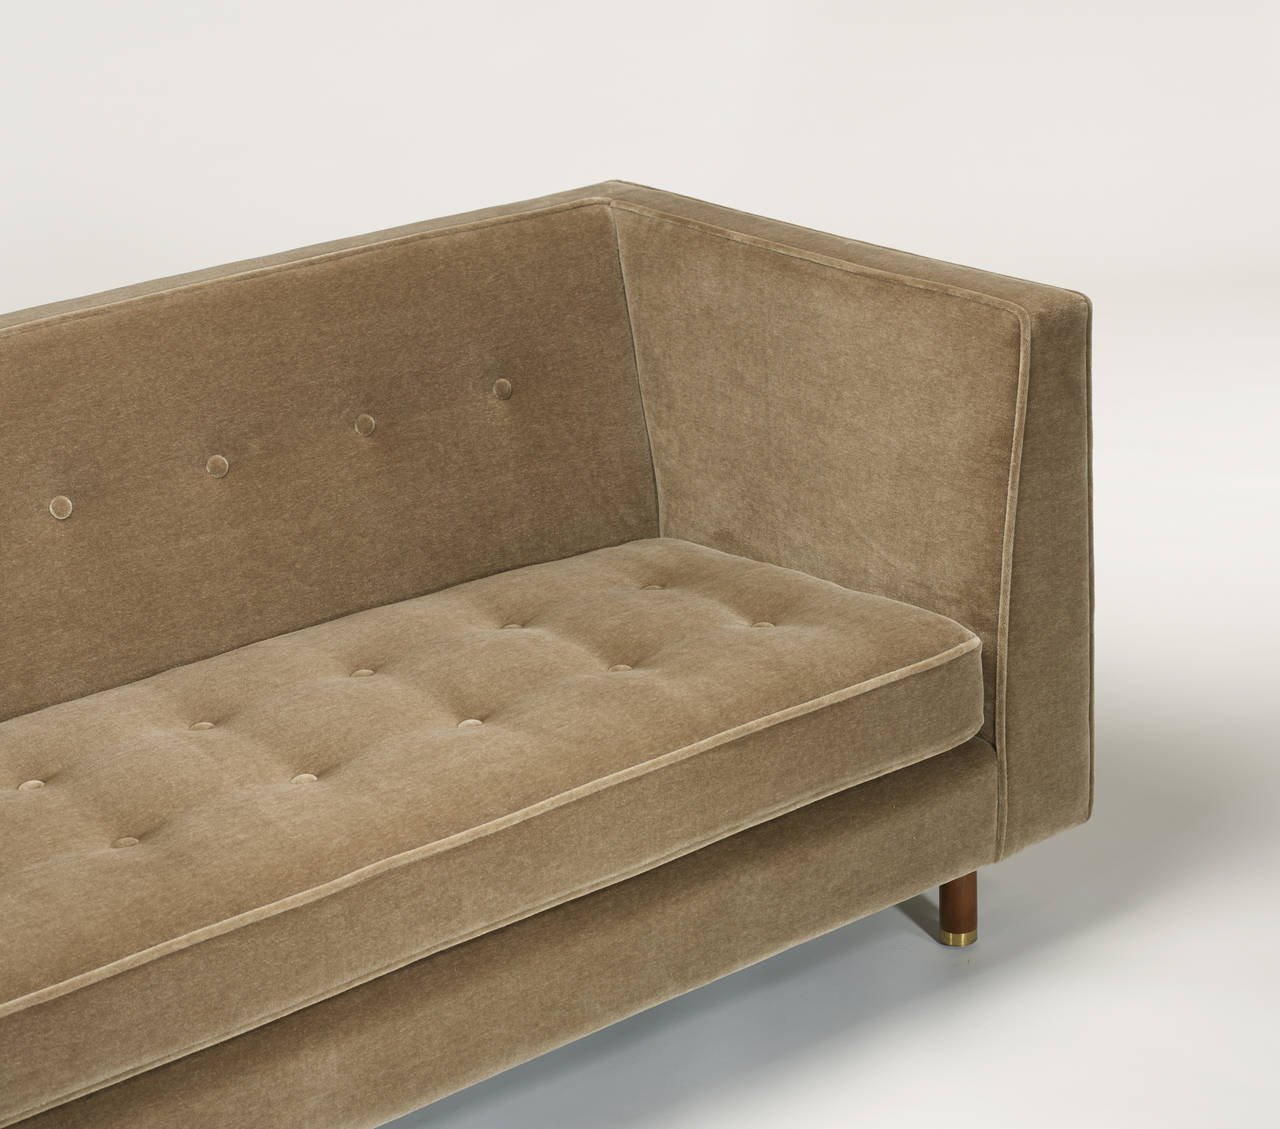 Sofa by Edward Wormley for Dunbar, 1950s - The Exchange Int